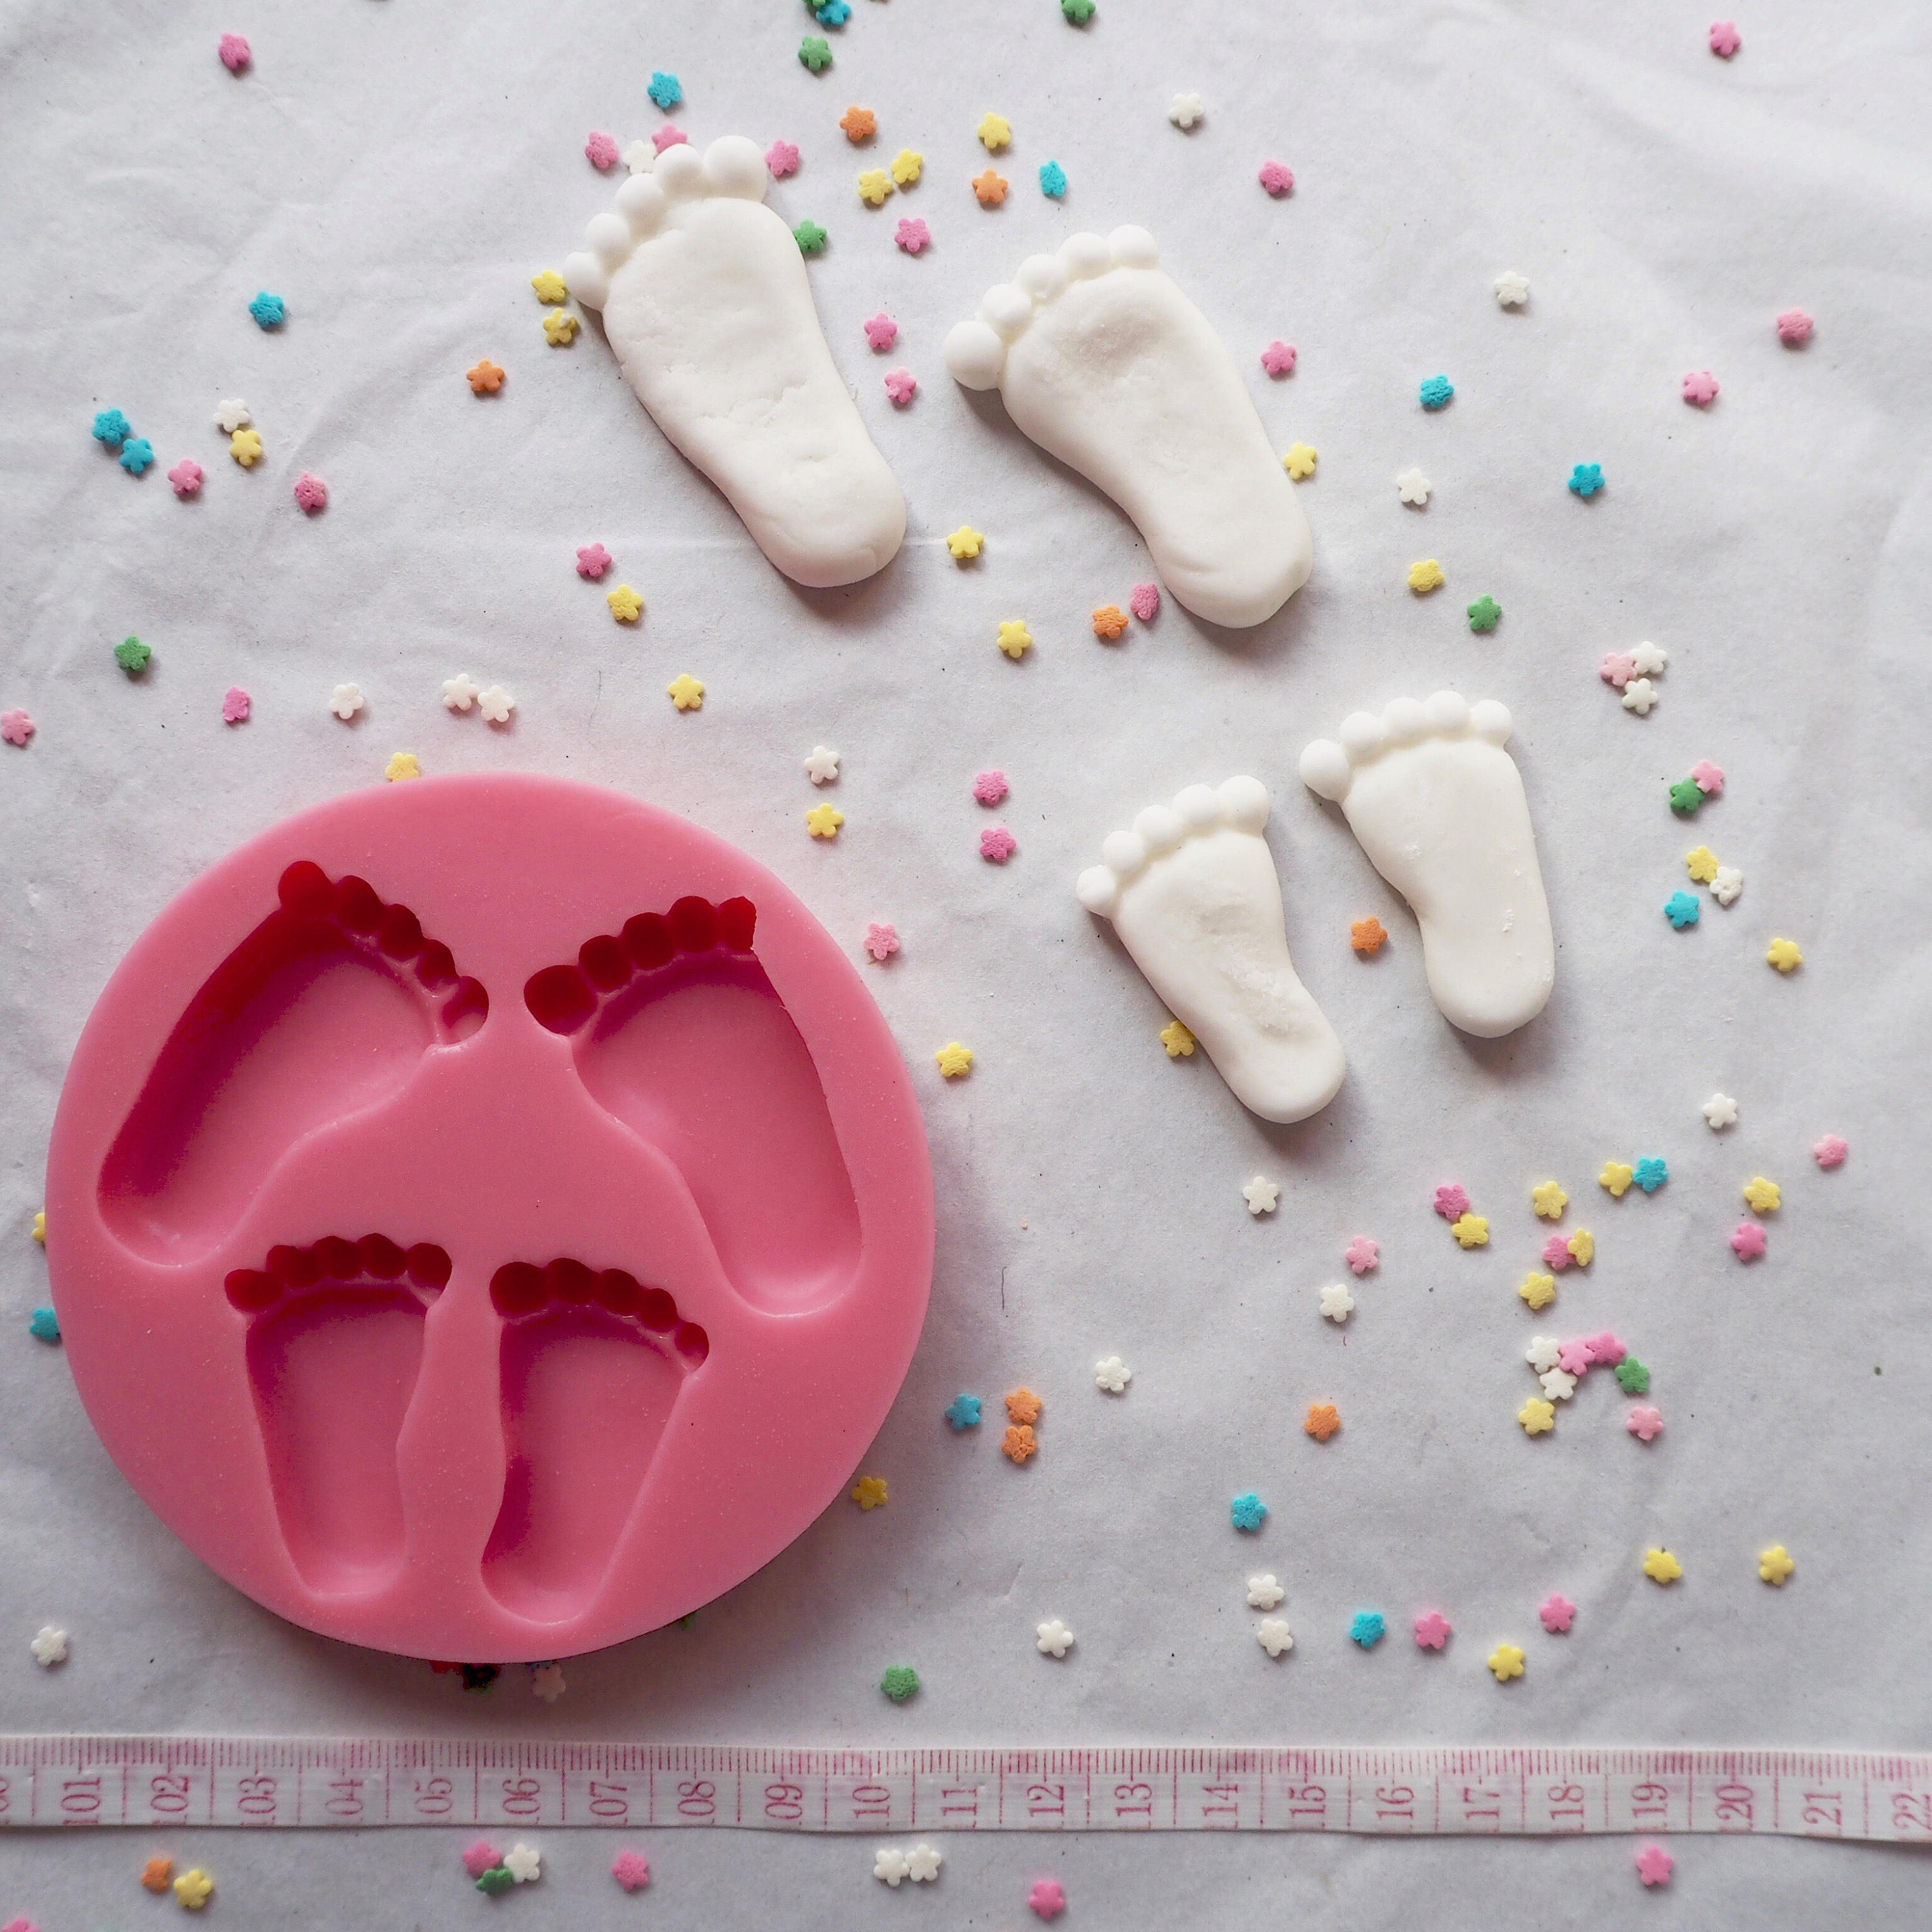 Baby Feet Silicone Mould Mold cake decorating cakes cupcakes